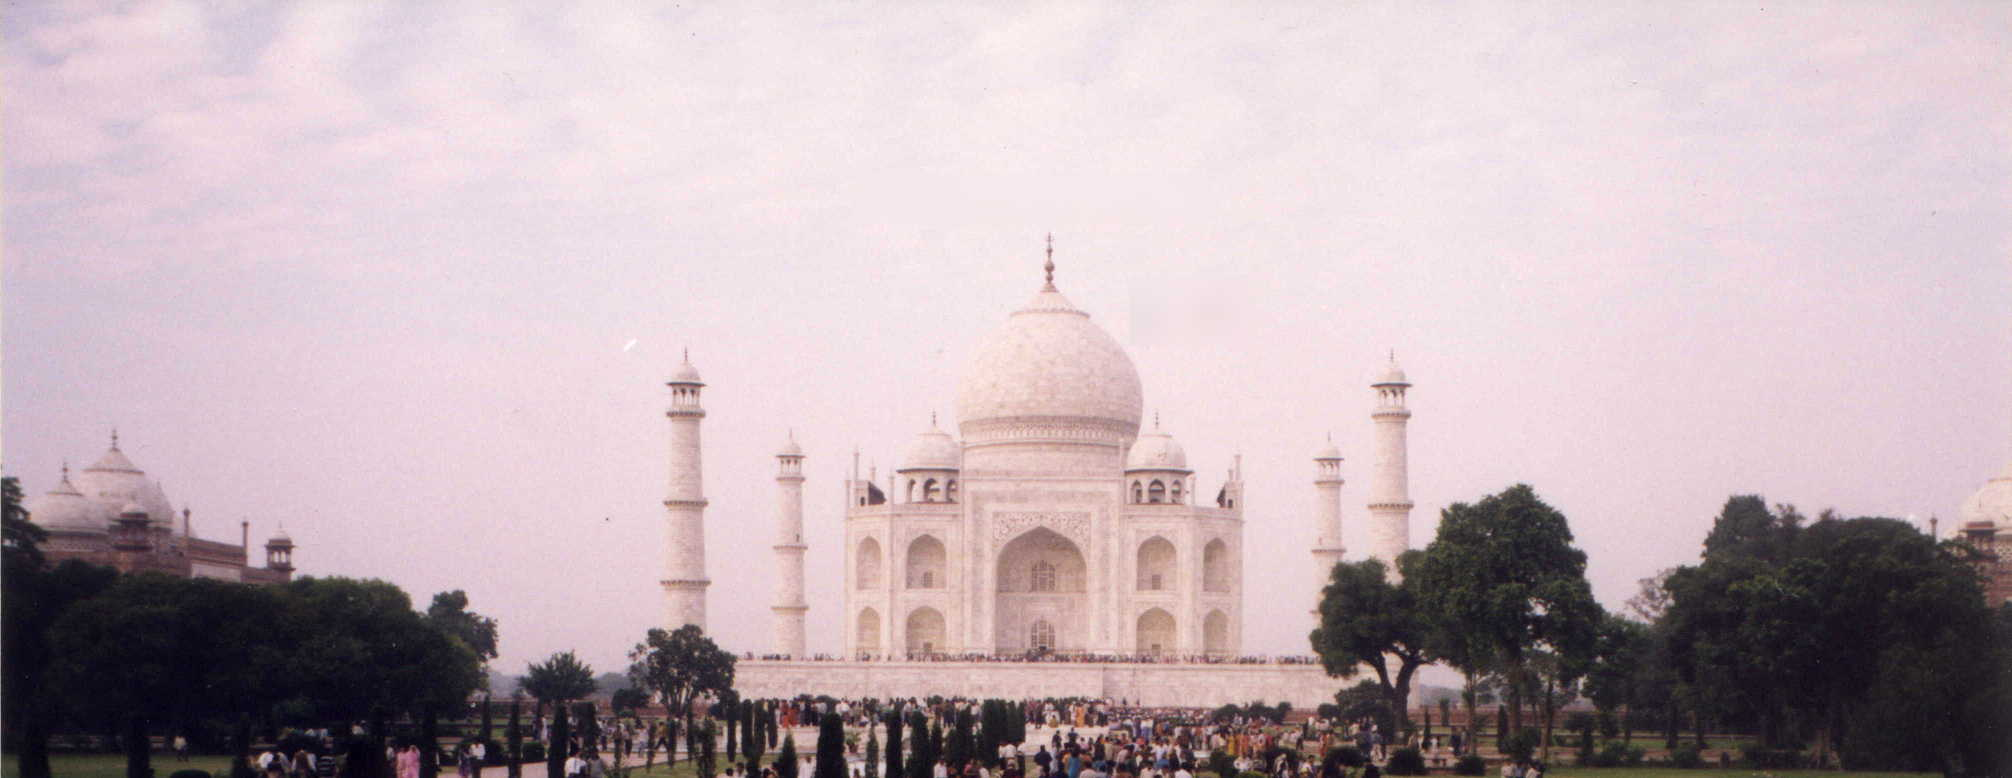 Area around the Taj